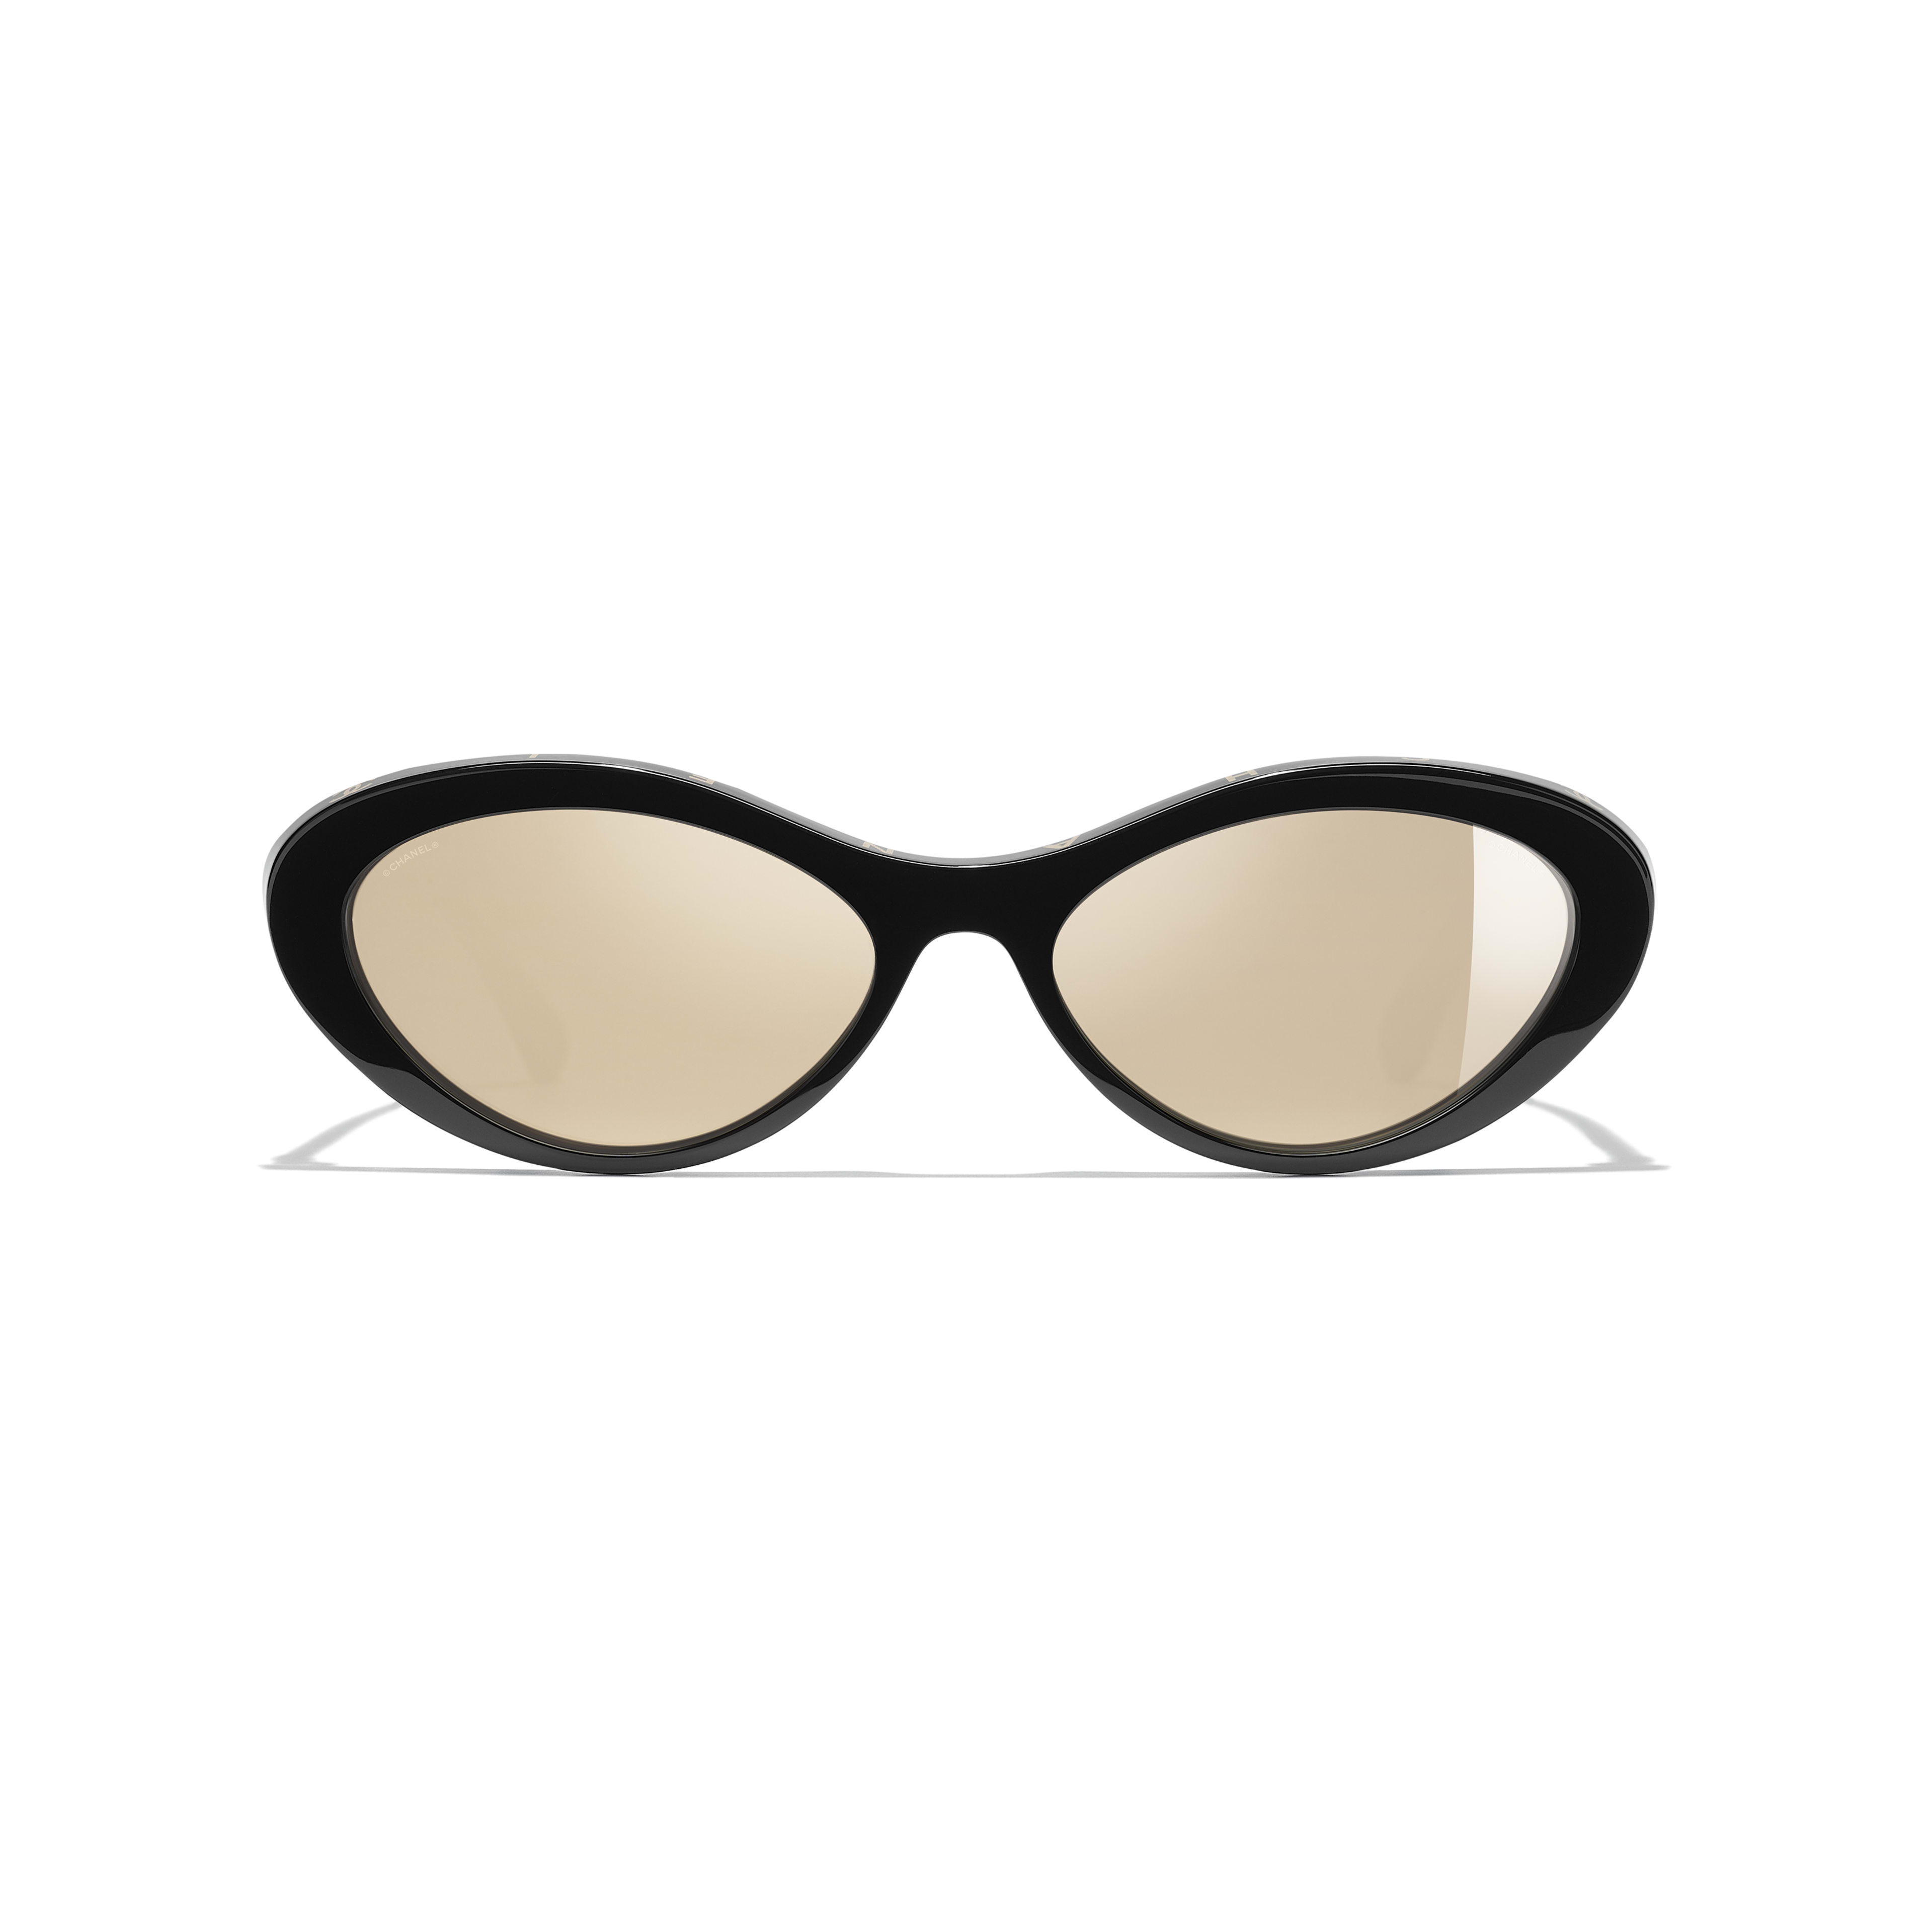 Oval Sunglasses - Black - Acetate - Alternative view - see full sized version